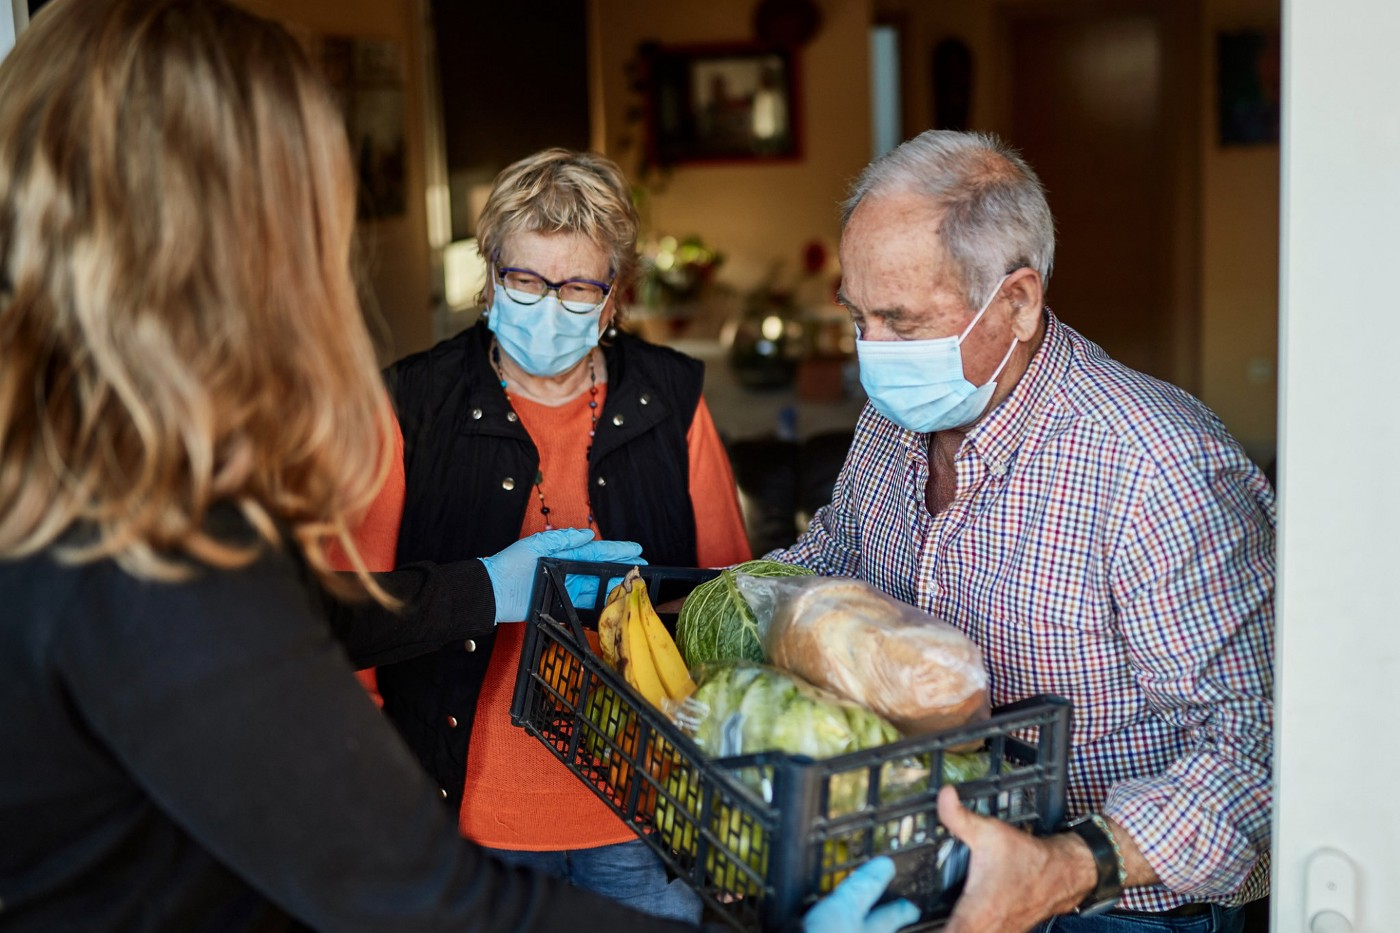 Couple receives groceries at home during quarantine.